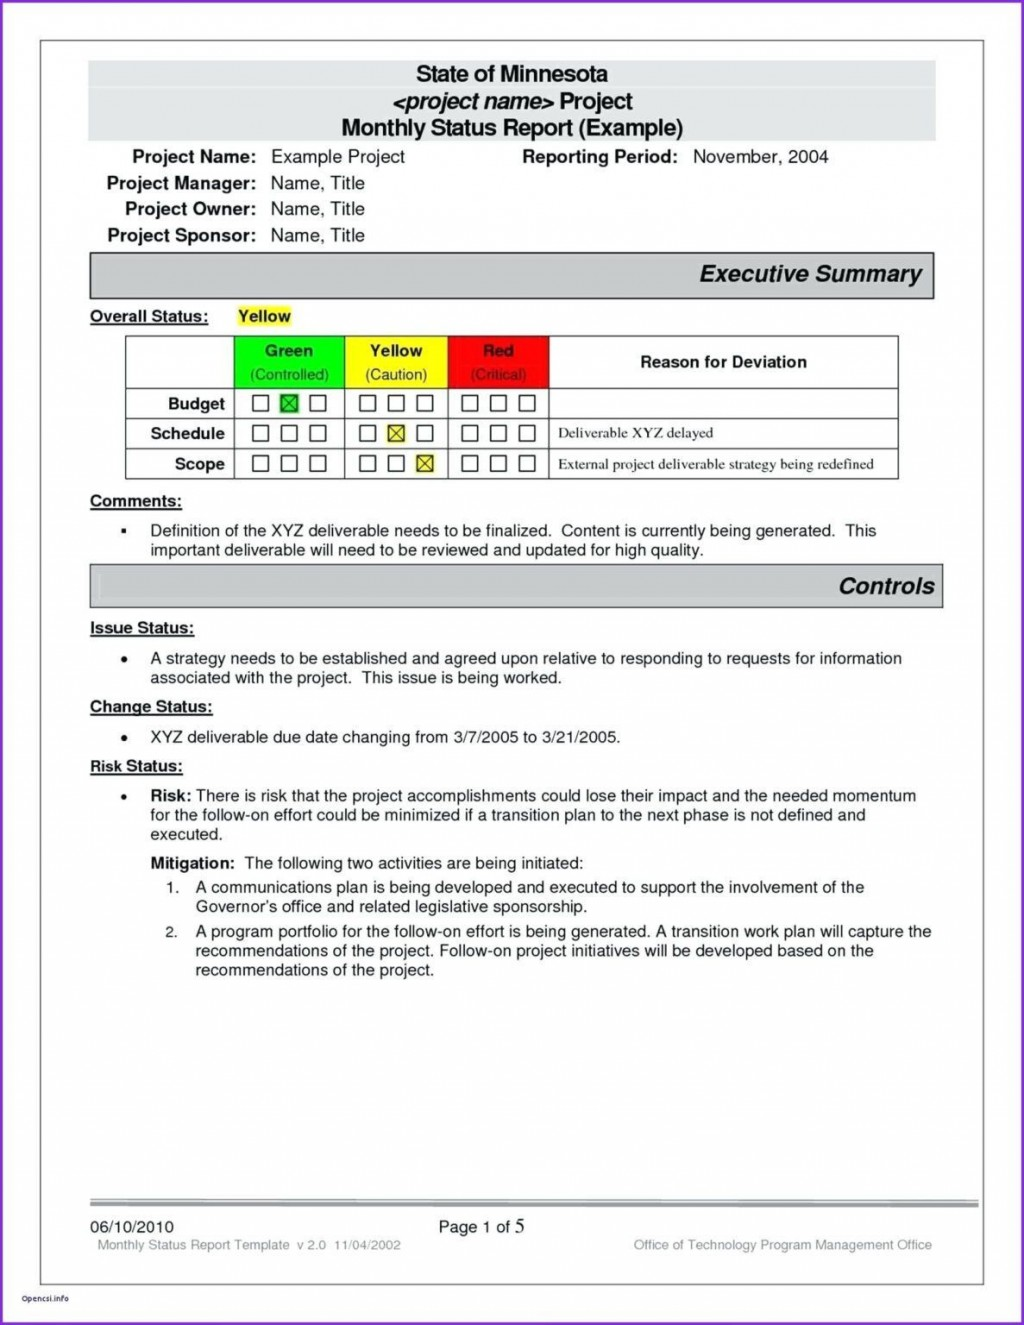 001 Shocking Project Management Weekly Statu Report Template Ppt Example  Template+powerpointLarge